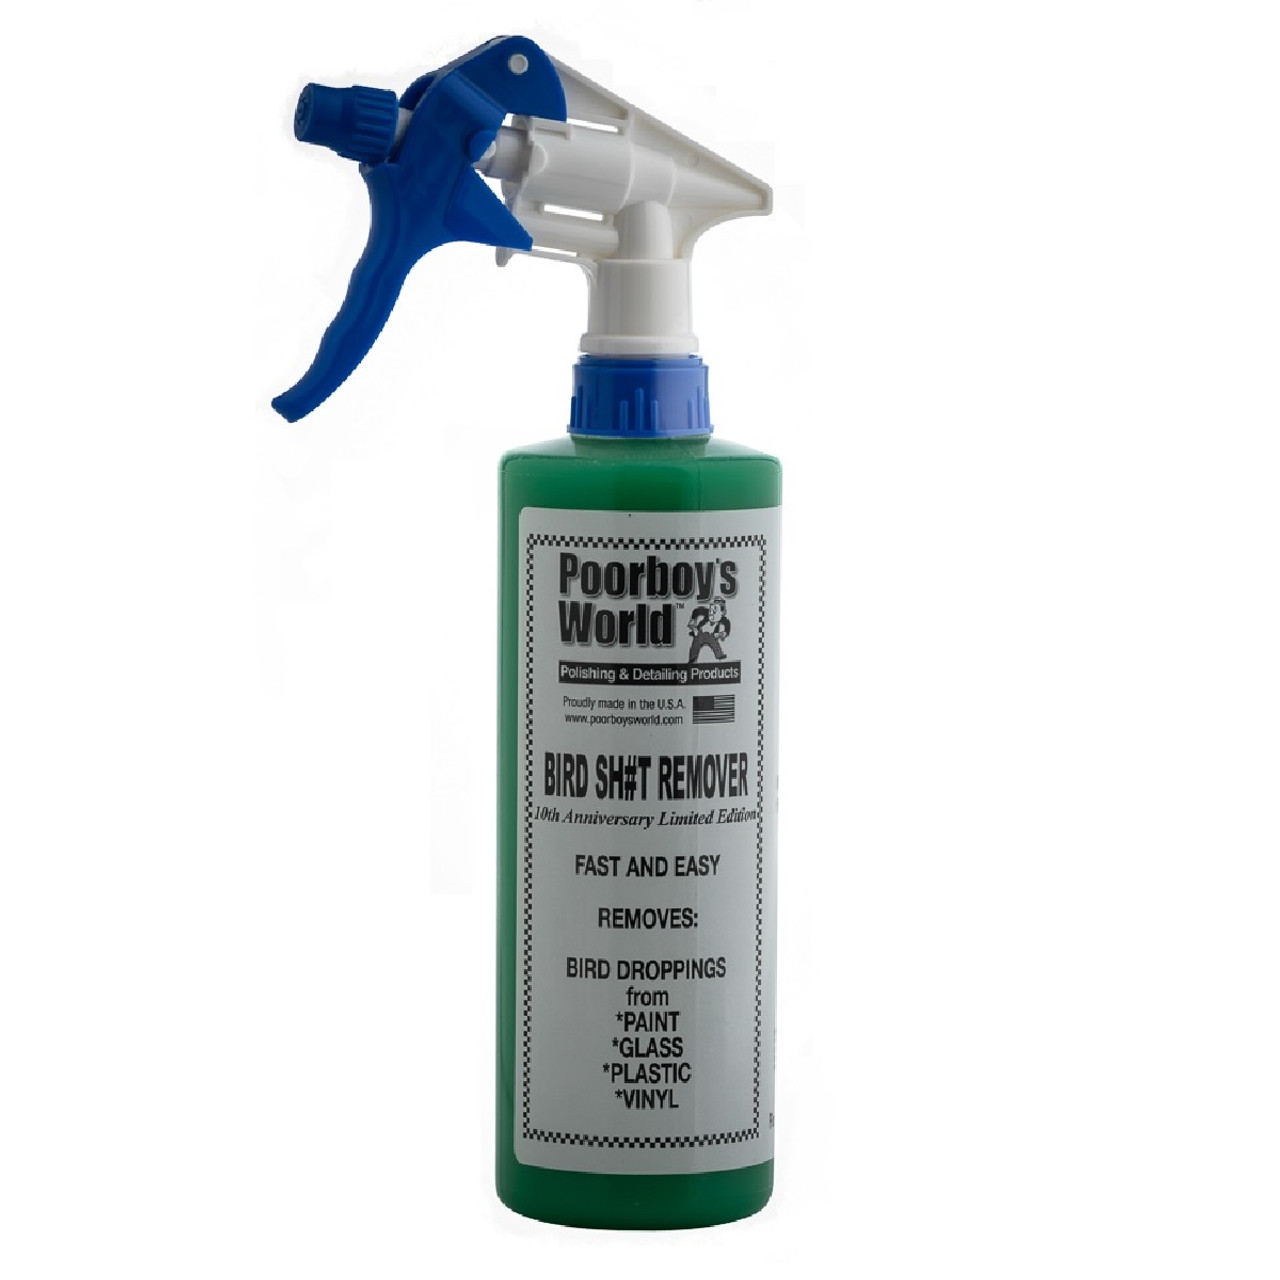 Poorboy's World Bird Sh#t Remover 16oz. w/Sprayer